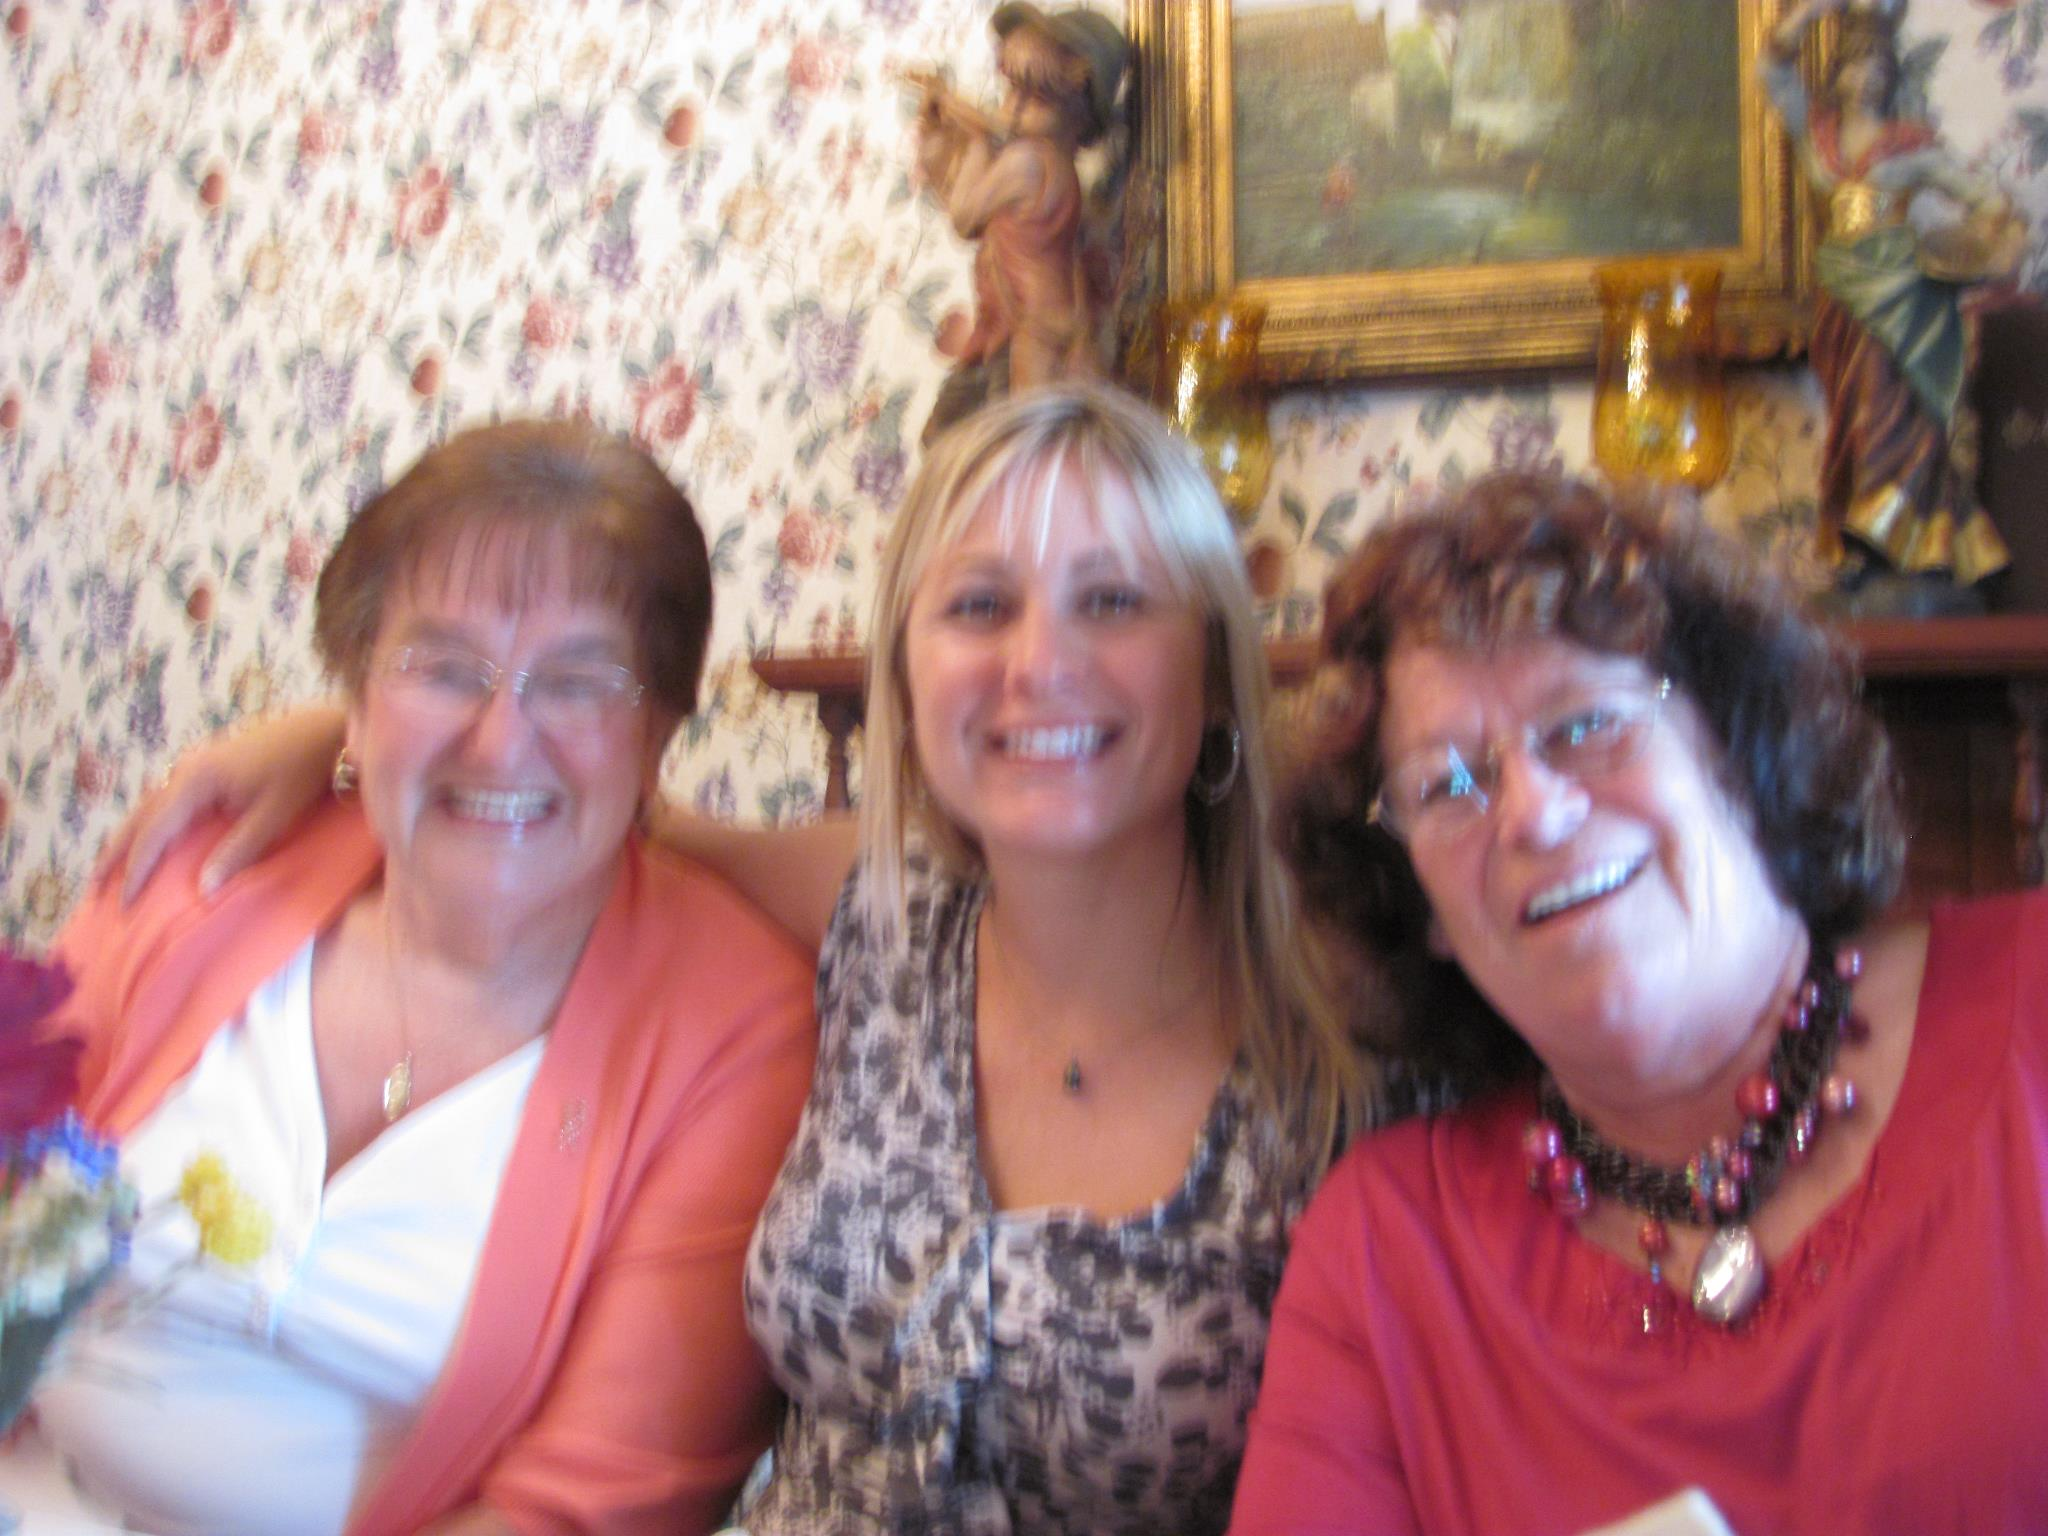 three woman smiling for camera